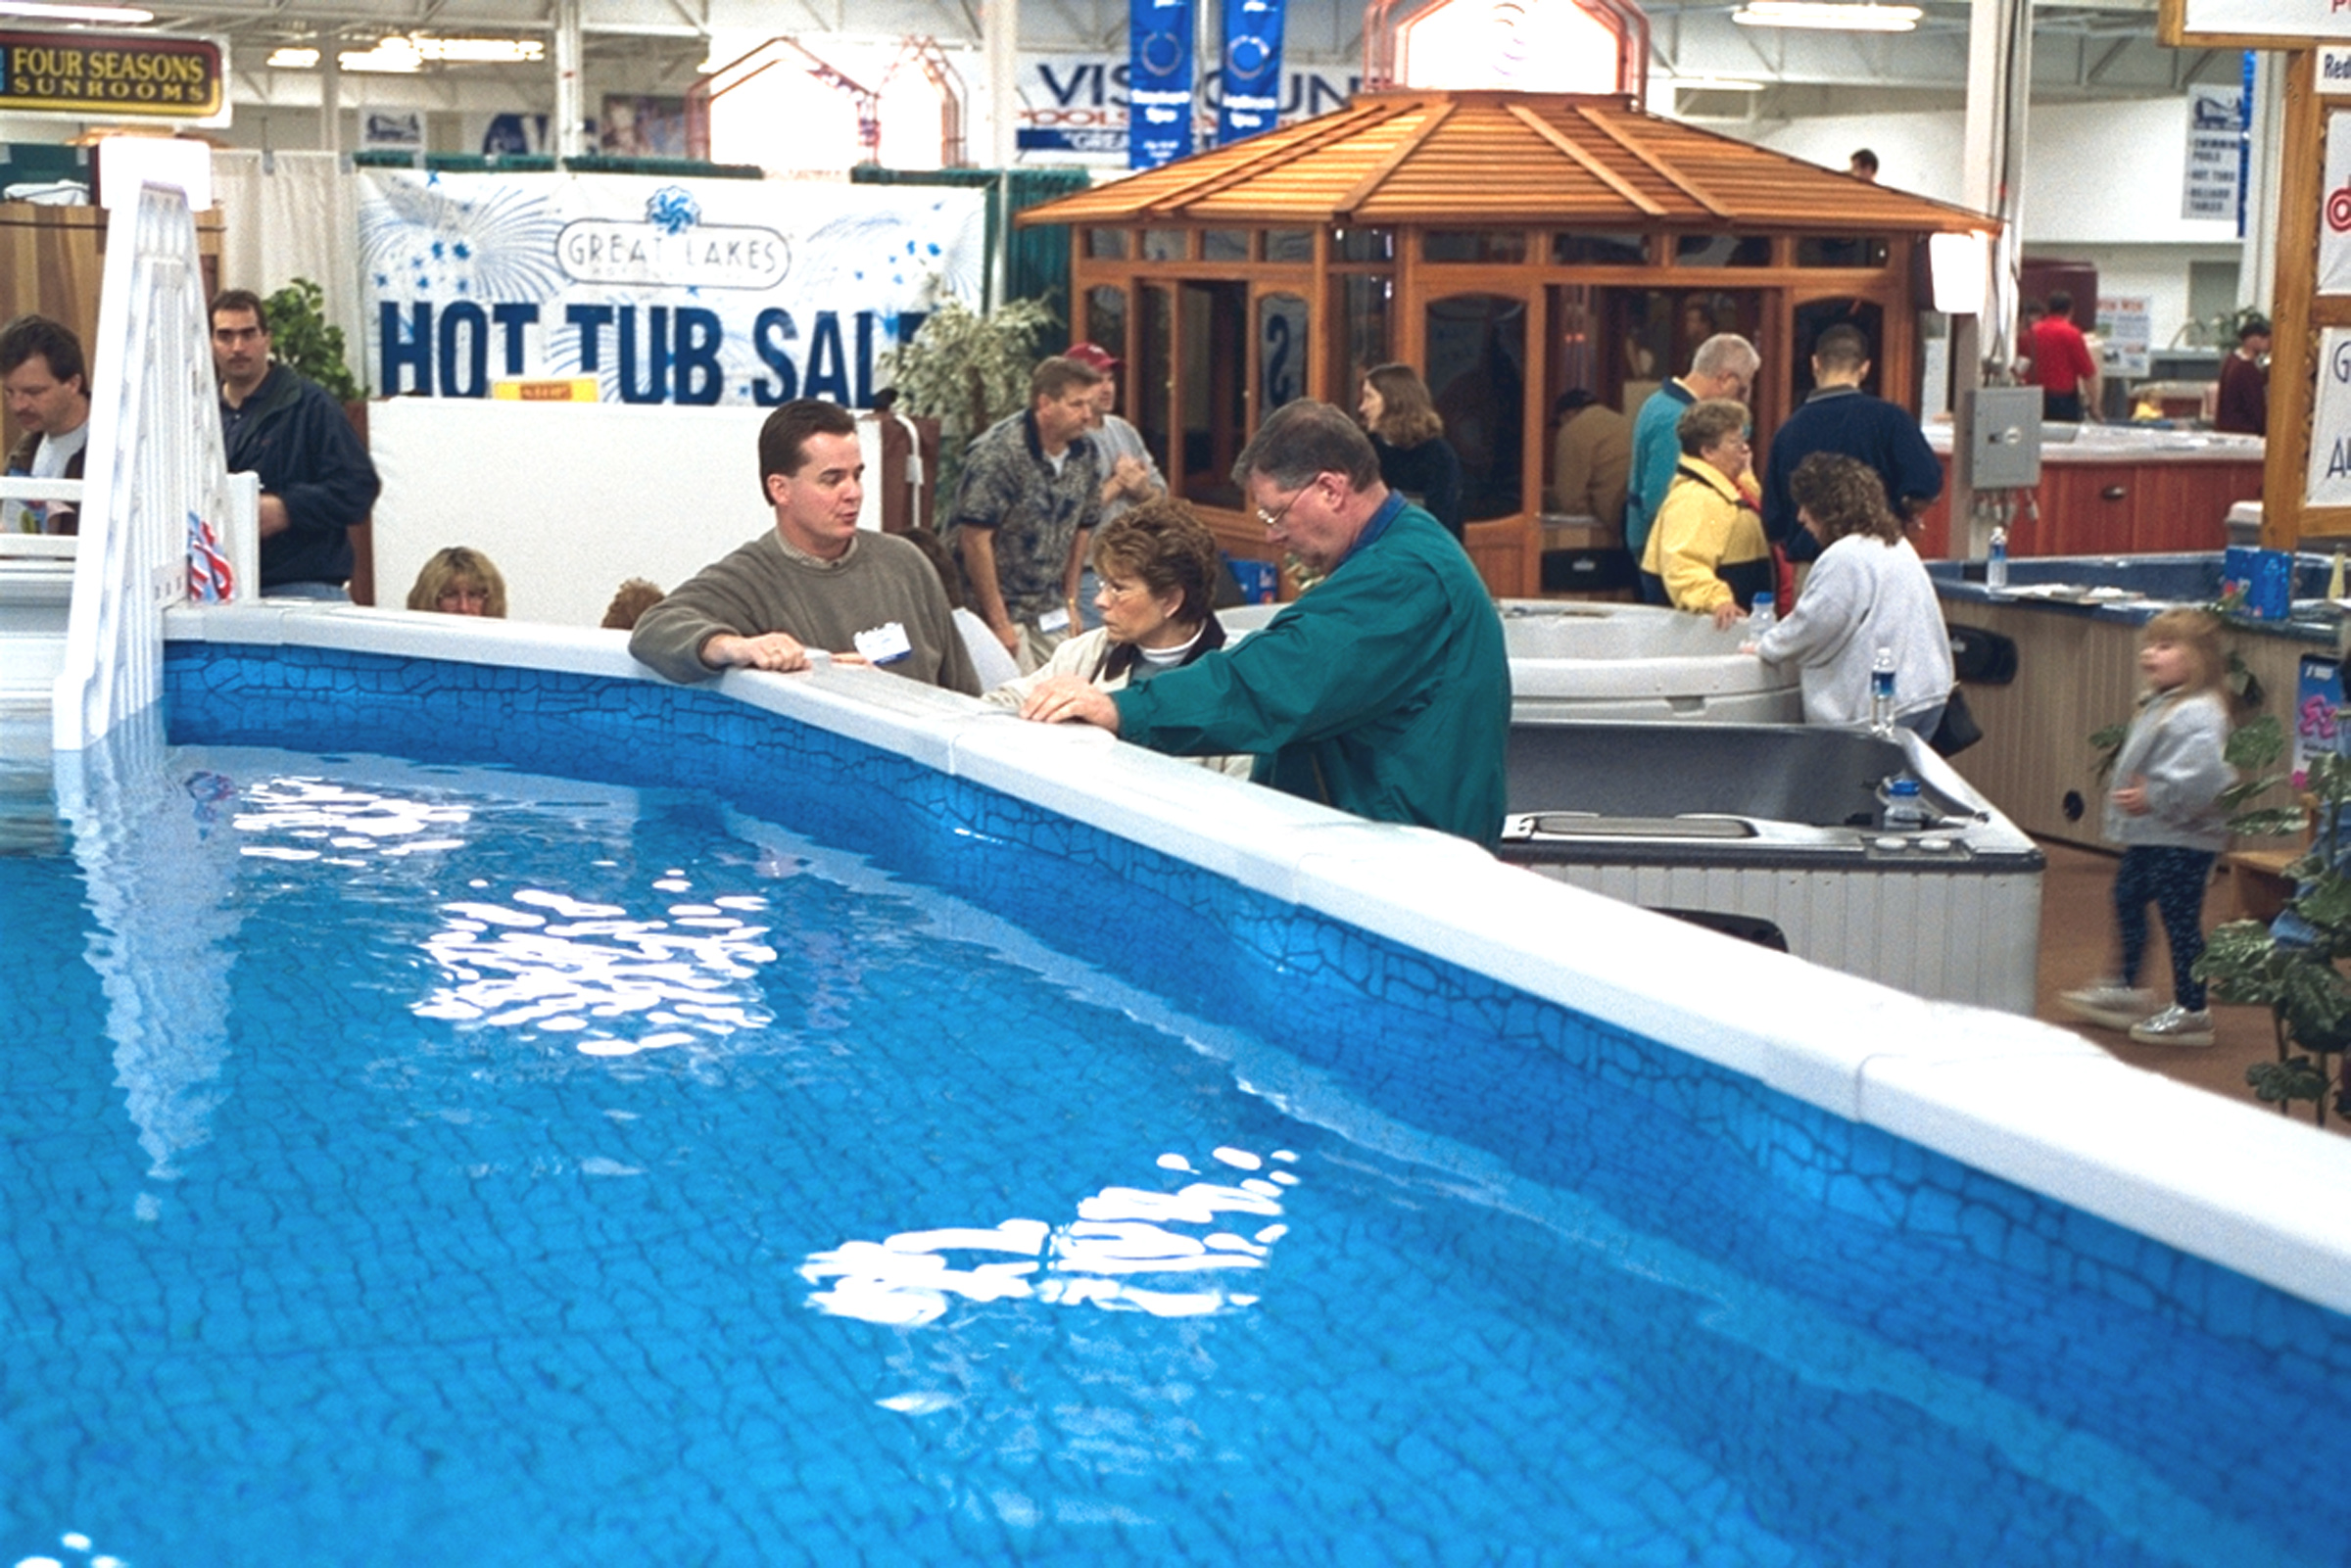 novi backyard pool spa show opens friday march 22 in novi